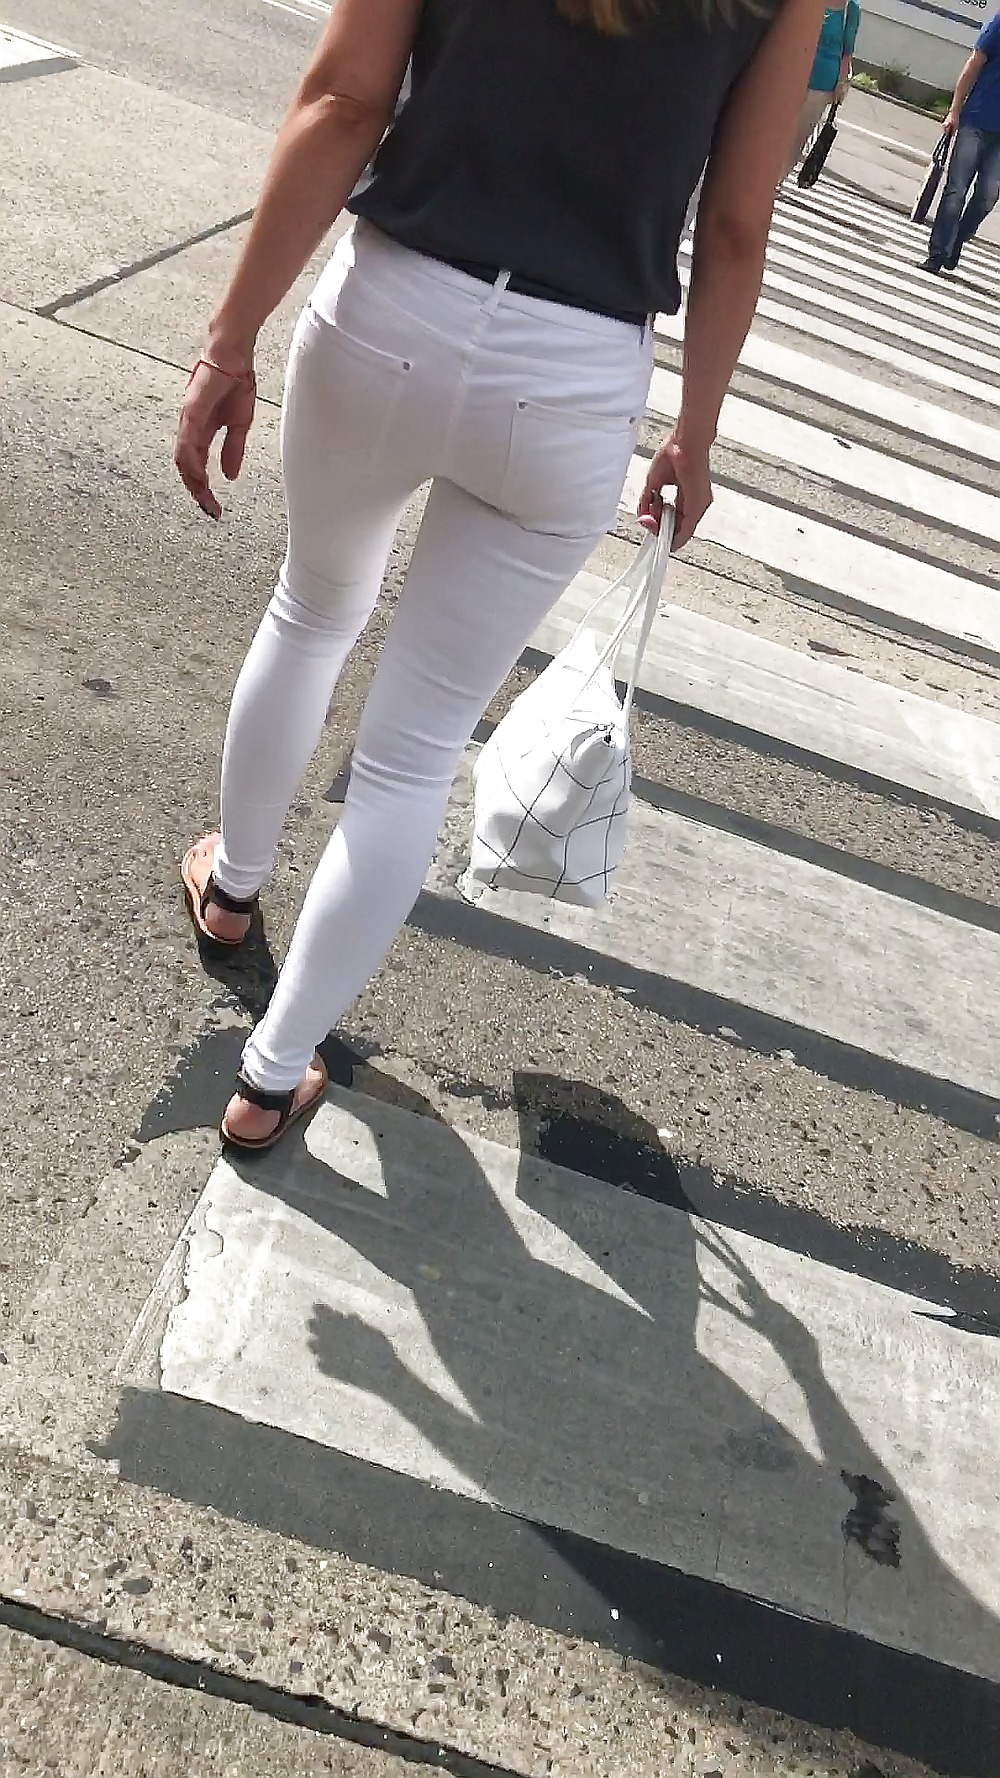 mother-hot-milf-in-white-jeans-sexy